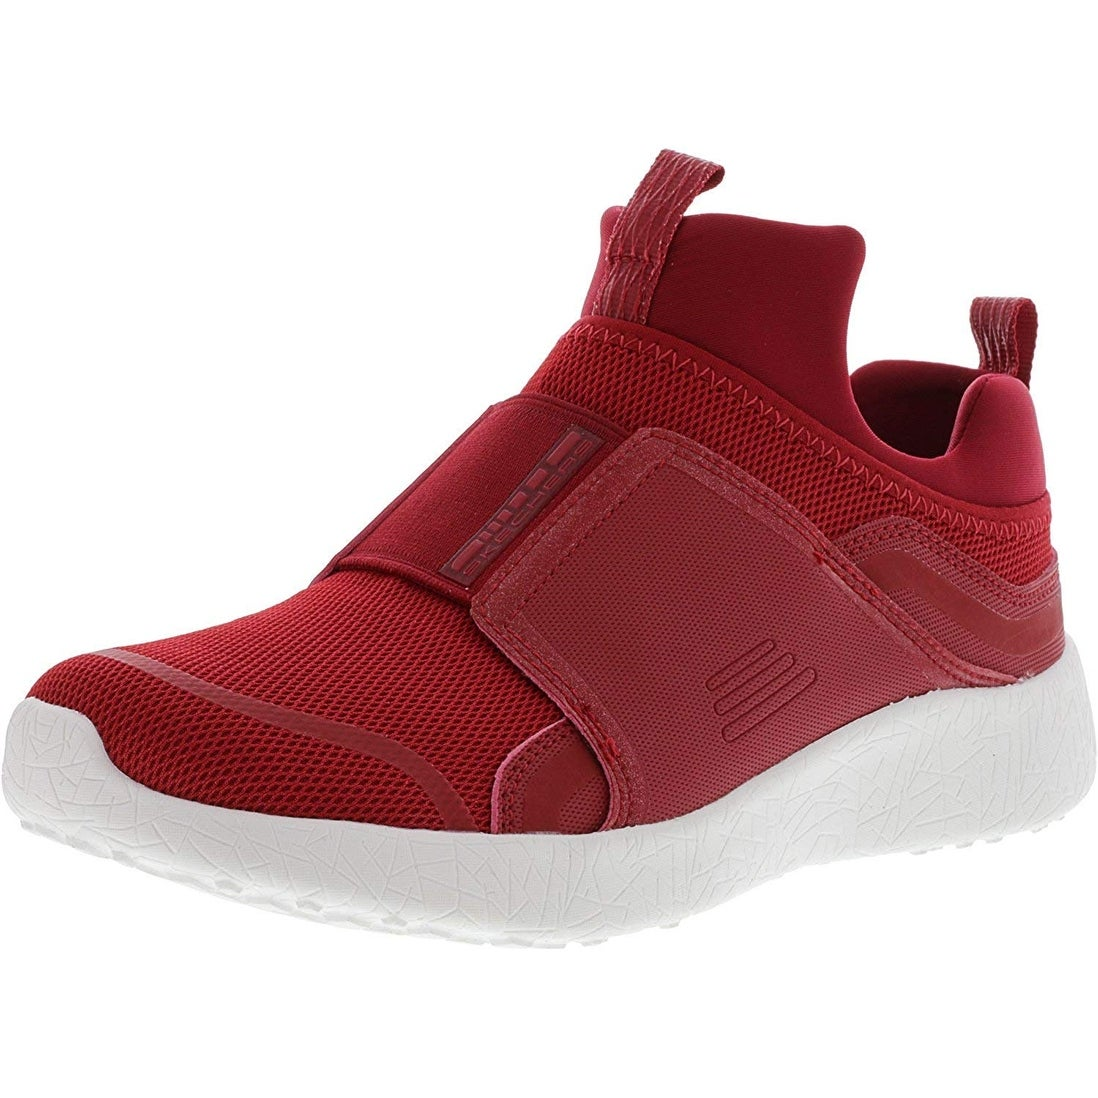 Athletic Shoes Womens Style: 12799-Red